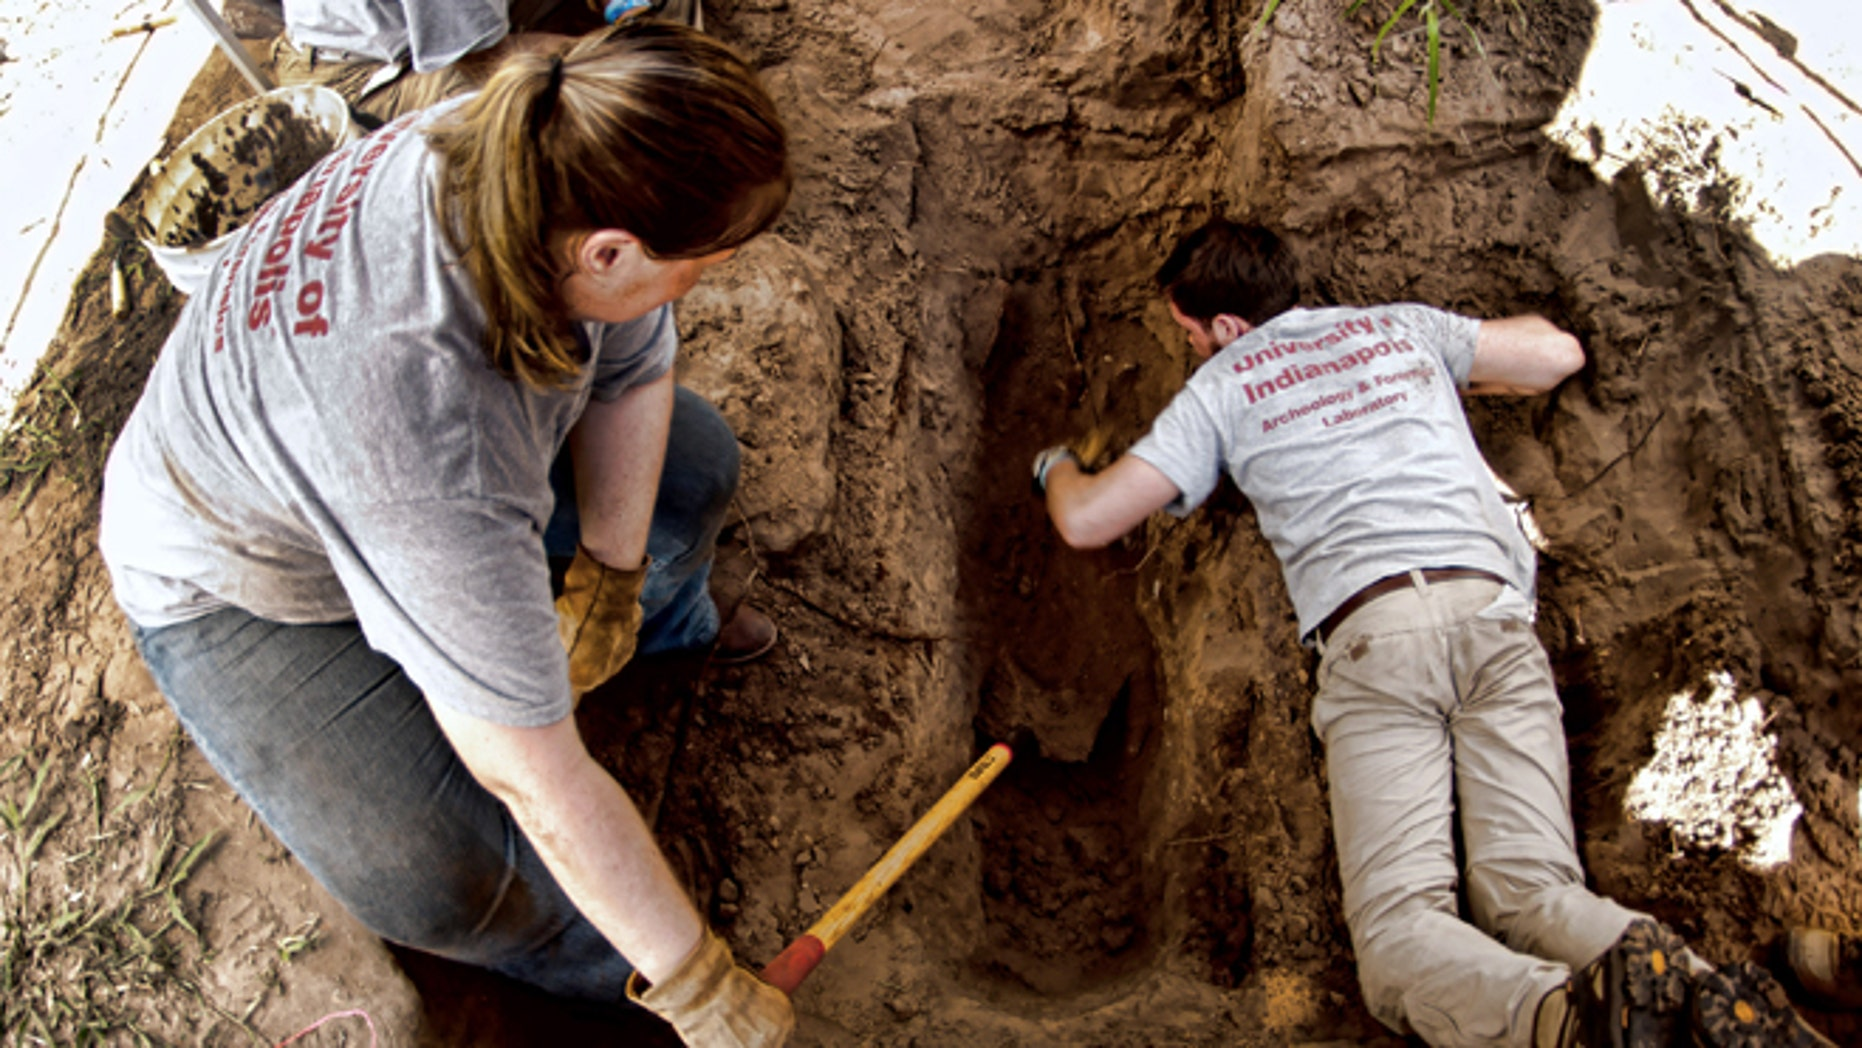 June 5, 2014: University of Indianapolis students use shovels and hand tools for delicate forensic archeology work at the Sacred Heart Burial Park in Falfurrias,Texas, where the graves of unidentified immigrants have been found.